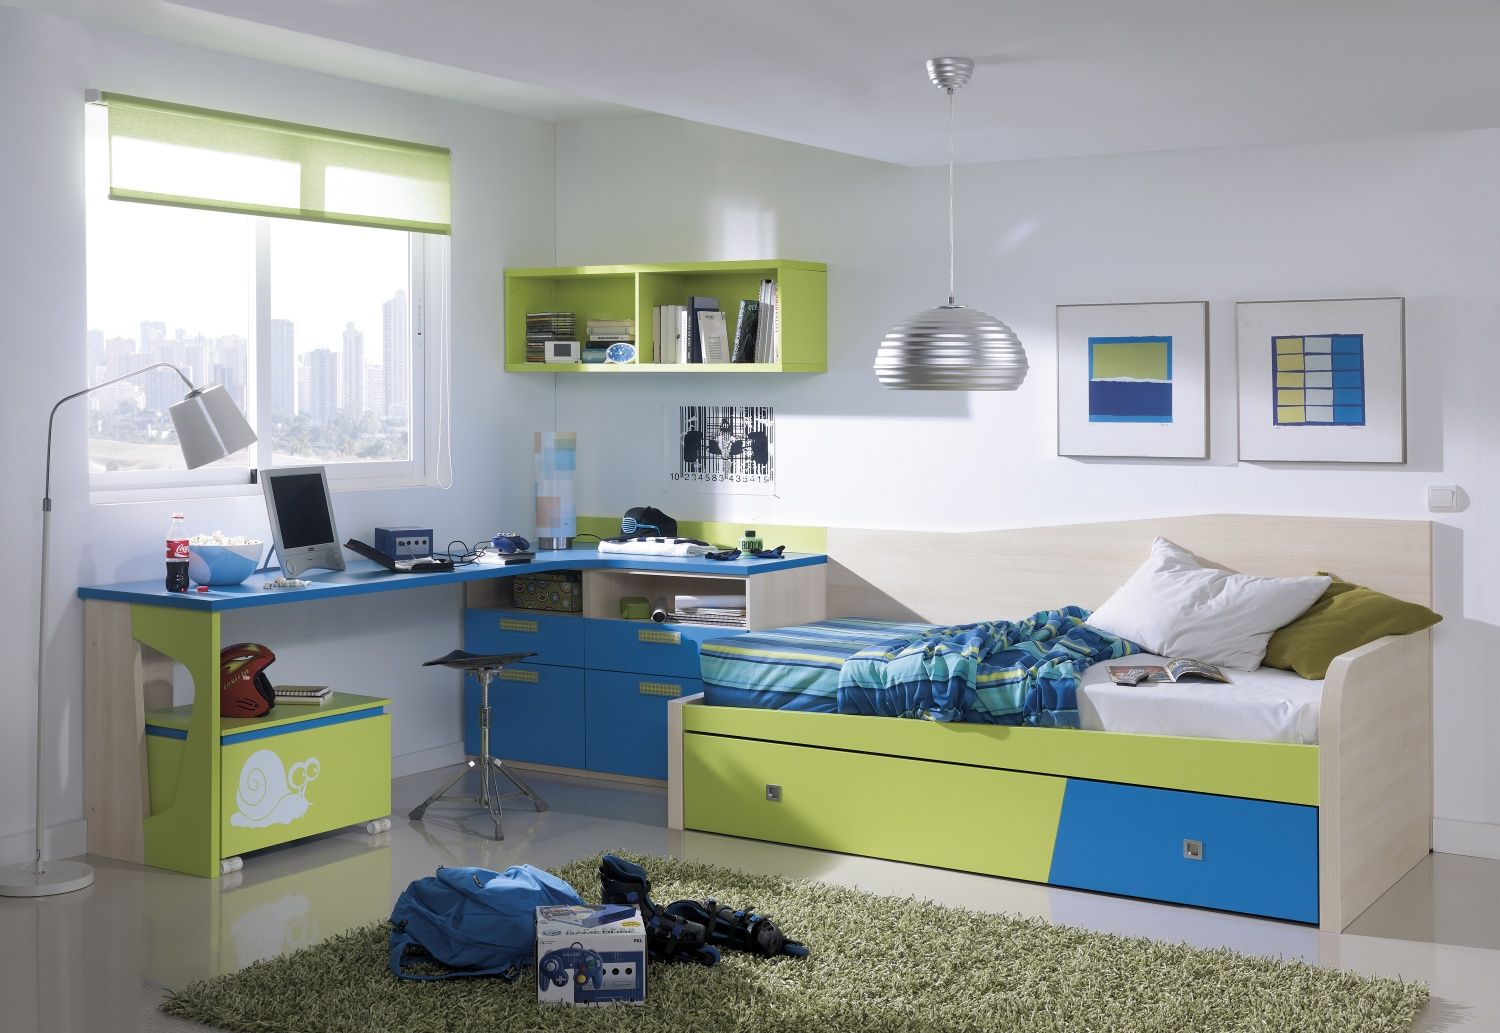 wooden sets kids decor furniture blogbeen set to ideas kid cheap what bedroom consider in bkfzkov